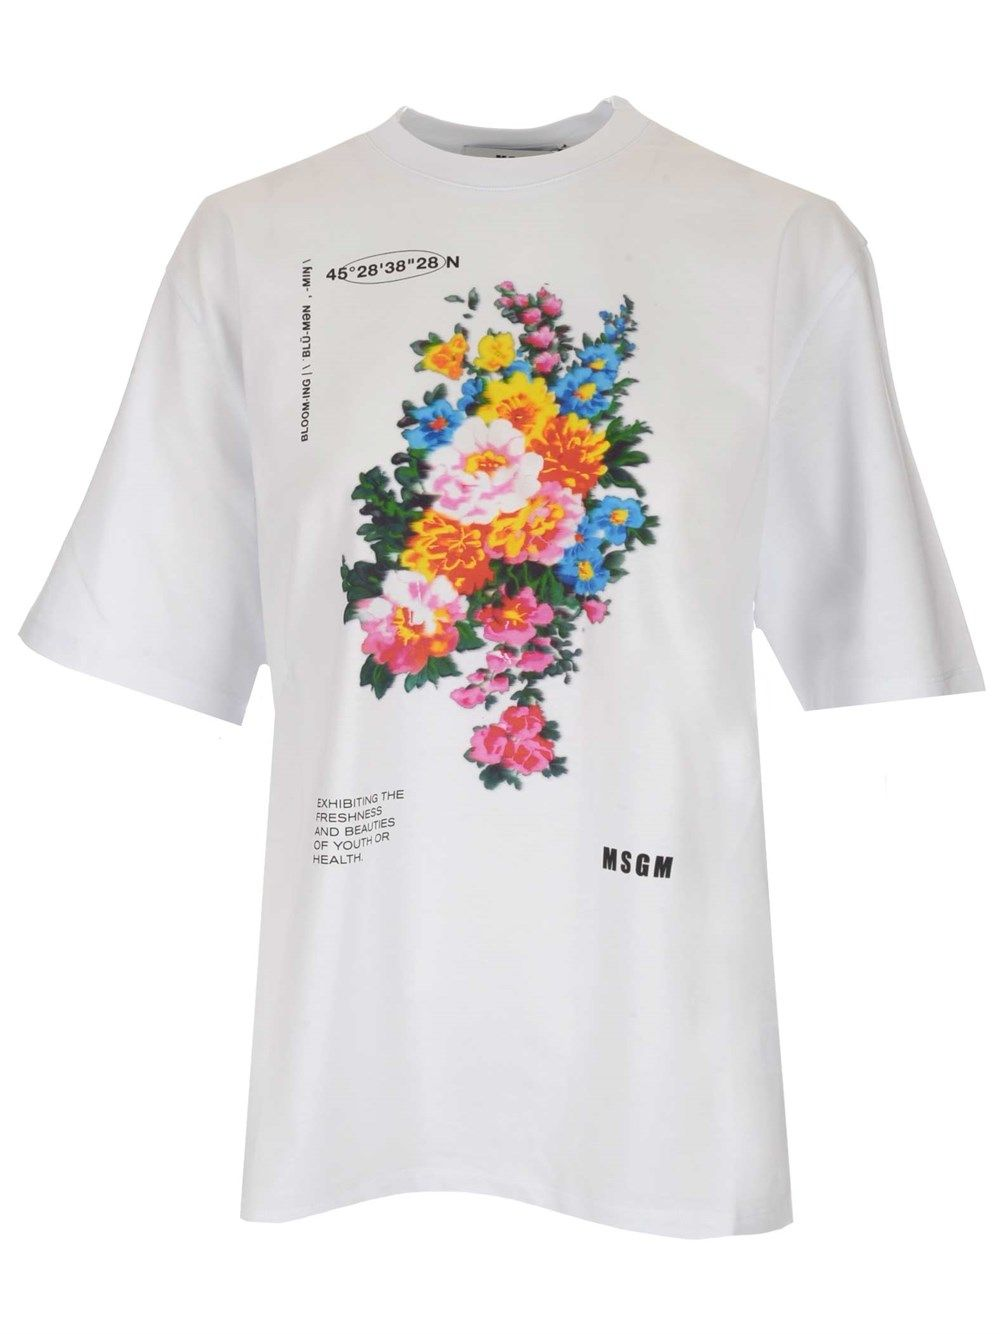 Msgm MSGM WOMEN'S WHITE OTHER MATERIALS T-SHIRT